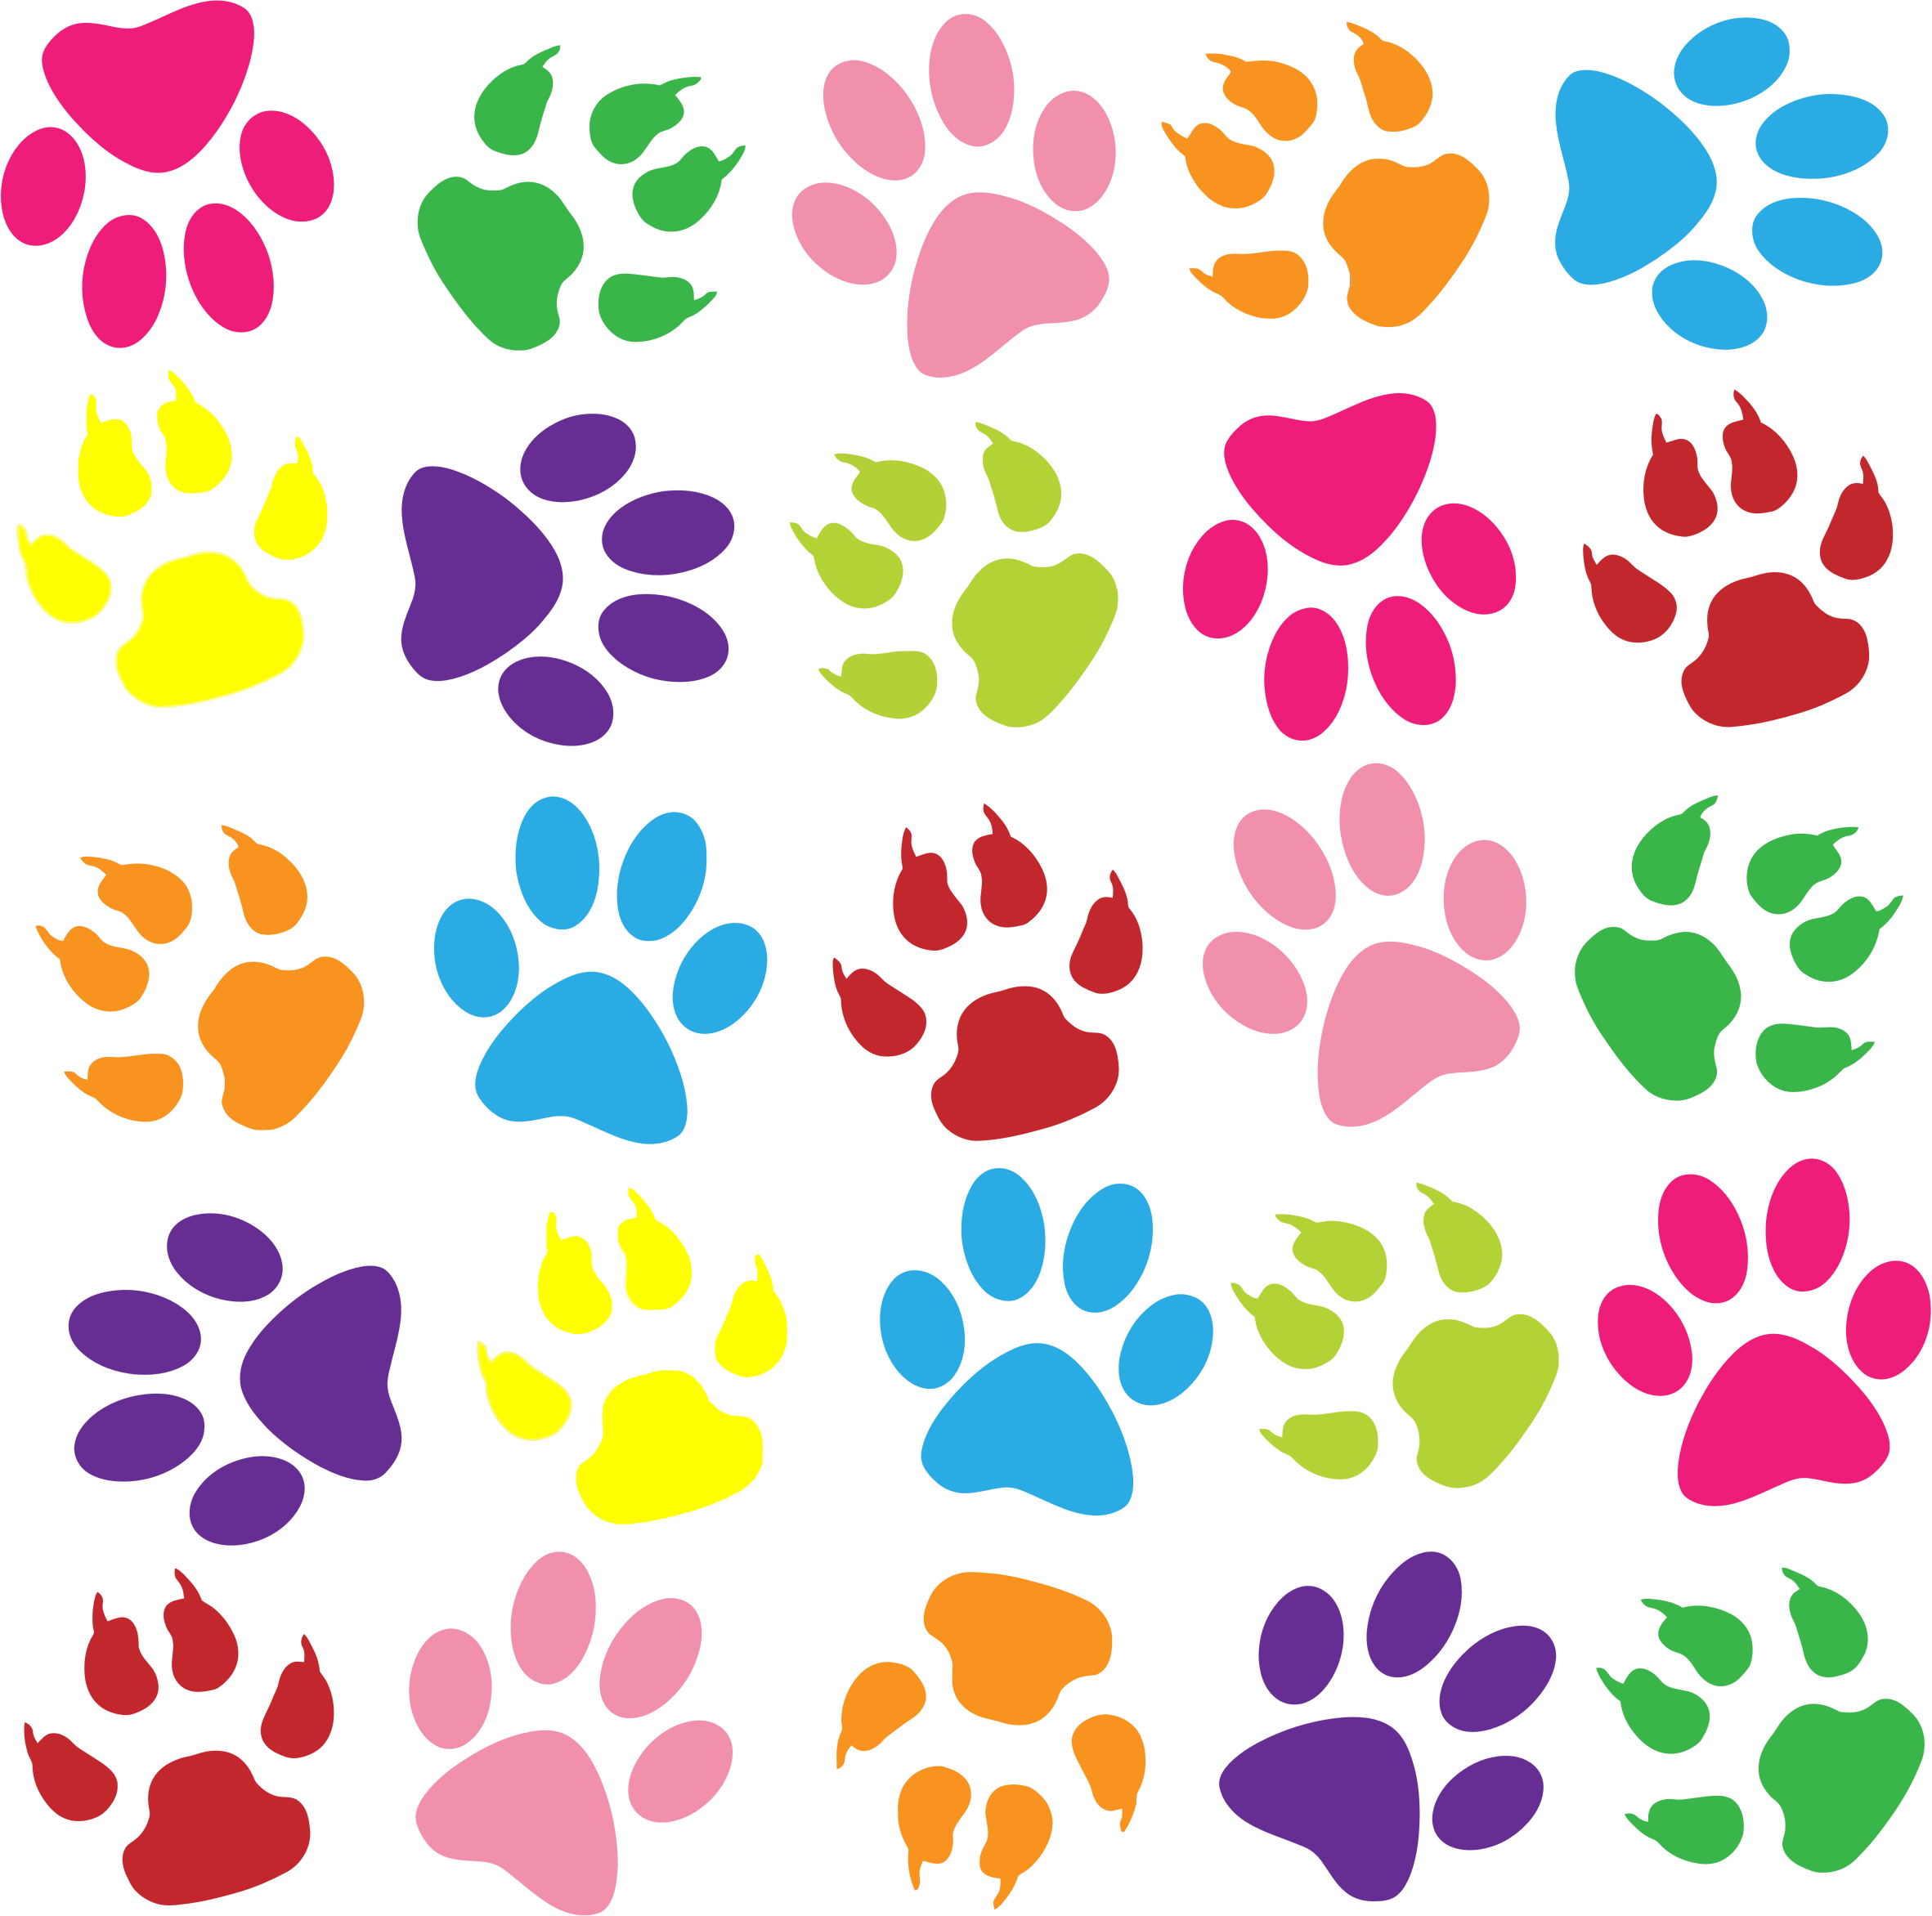 clipart colorful paw prints pattern background Barrel Racing Clip Art Sparkling Clean House Clip Art